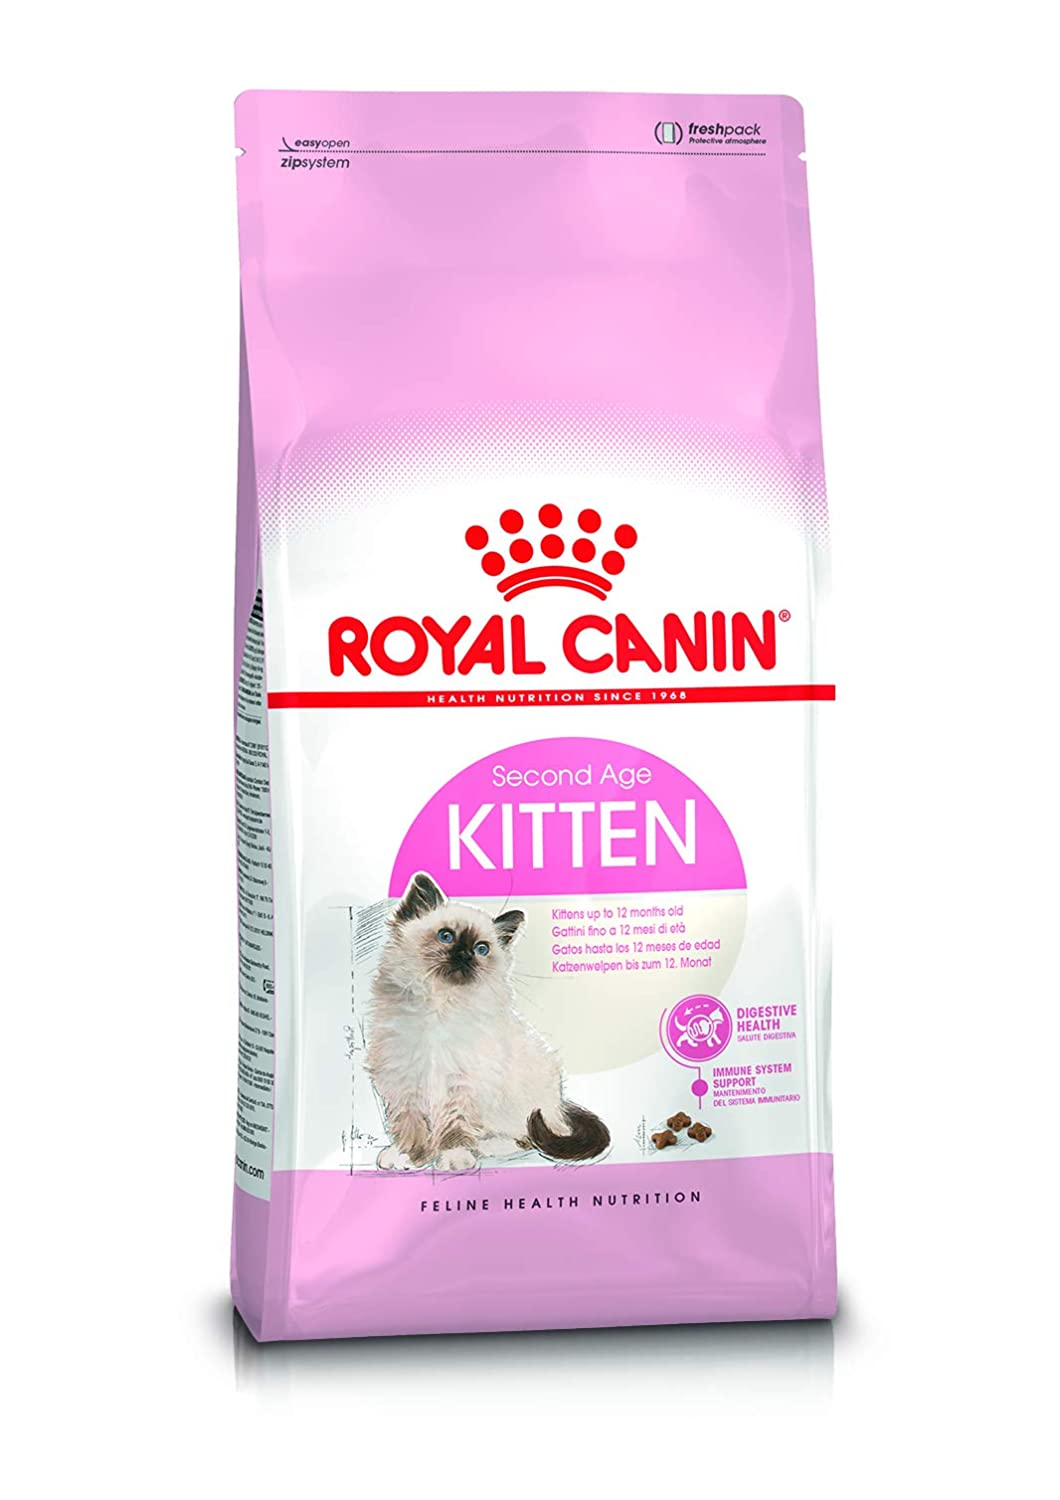 Buy Royal Canin Second Age Kitten Food 4 Kg Online At Low Prices In India Amazon In